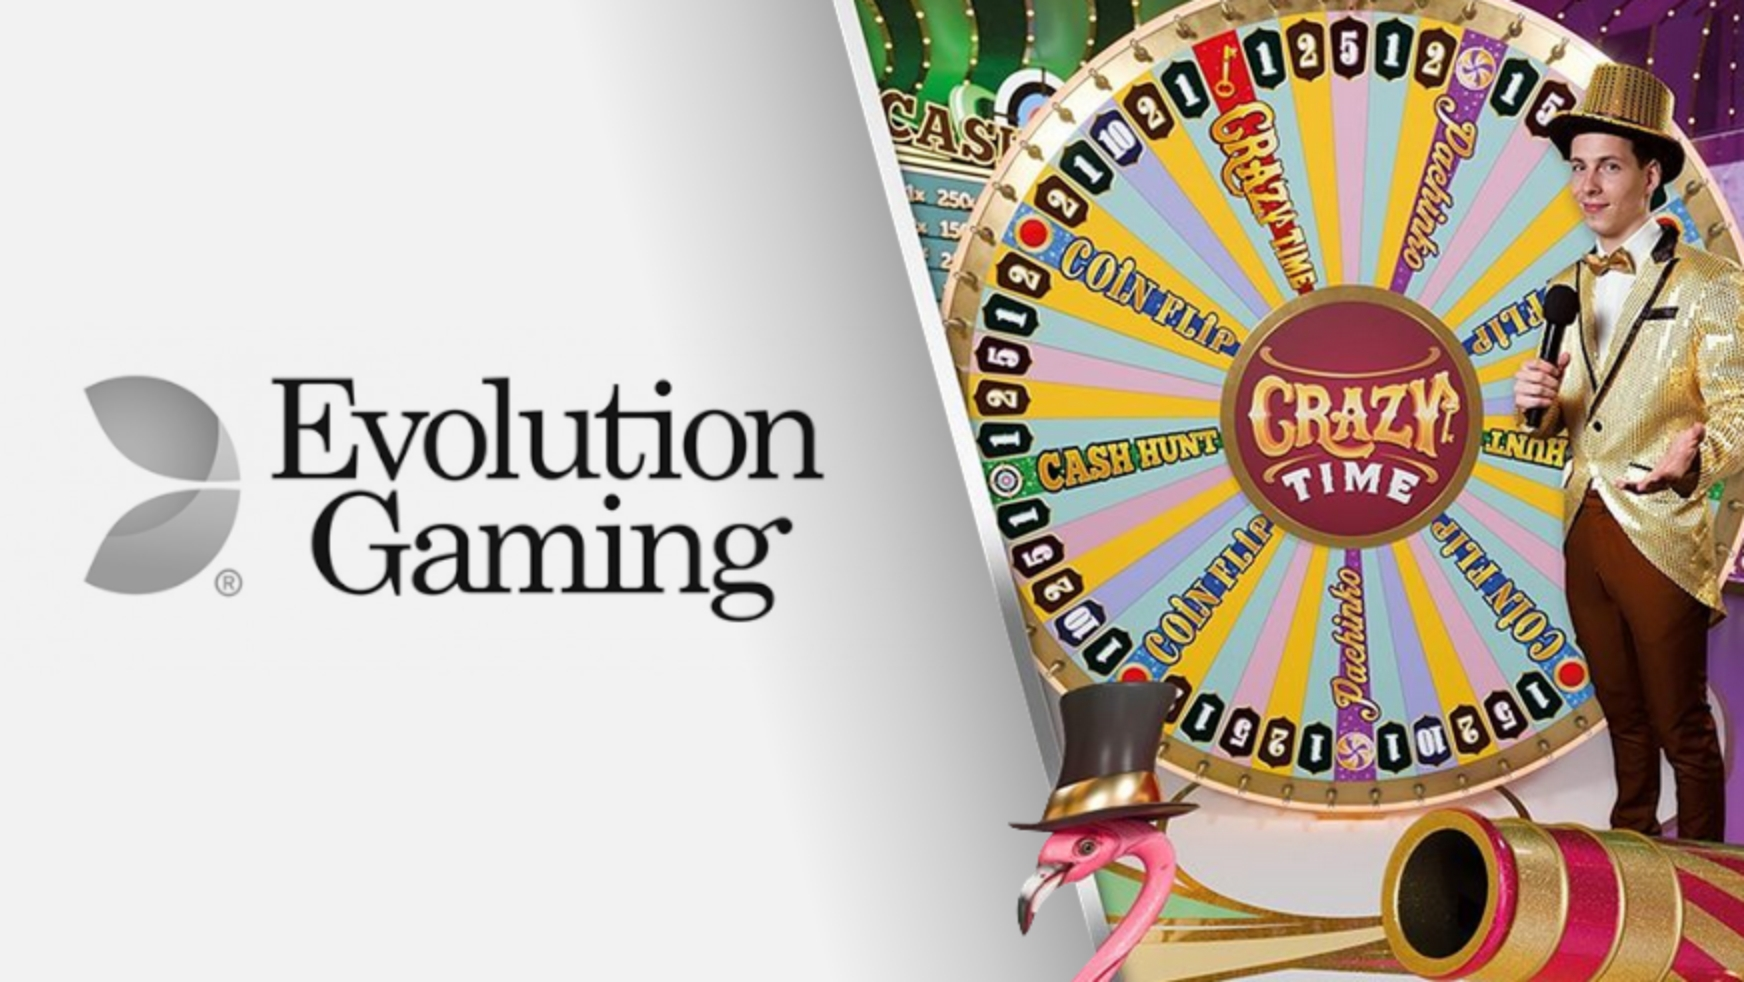 The Crazy Time Online Slot Demo Game by Evolution Gaming